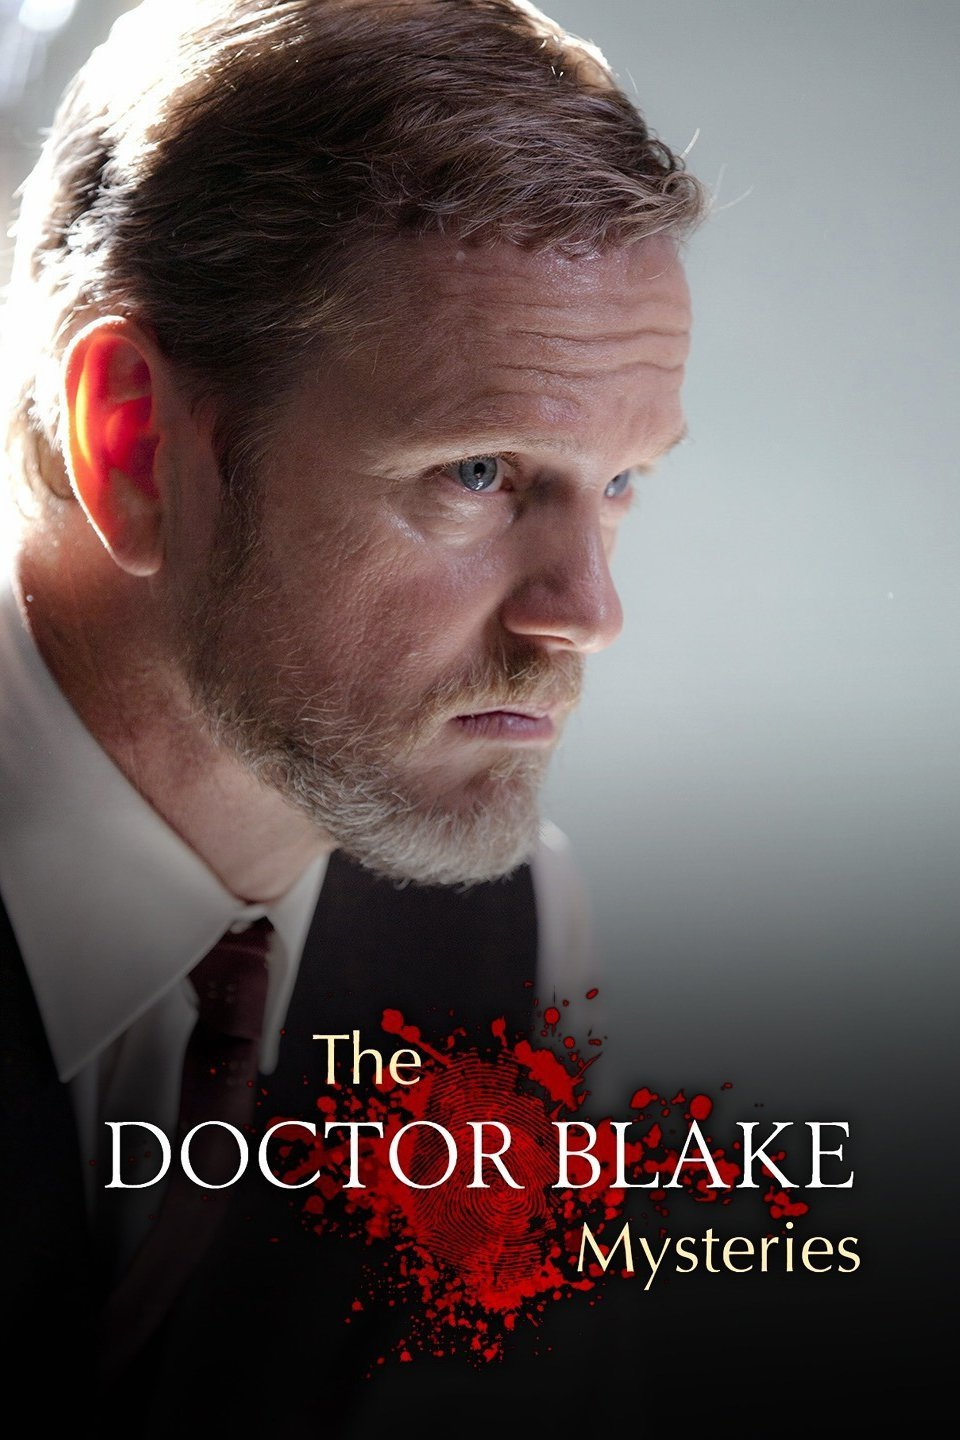 The Doctor Blake Mysteries saison 4 en vostfr